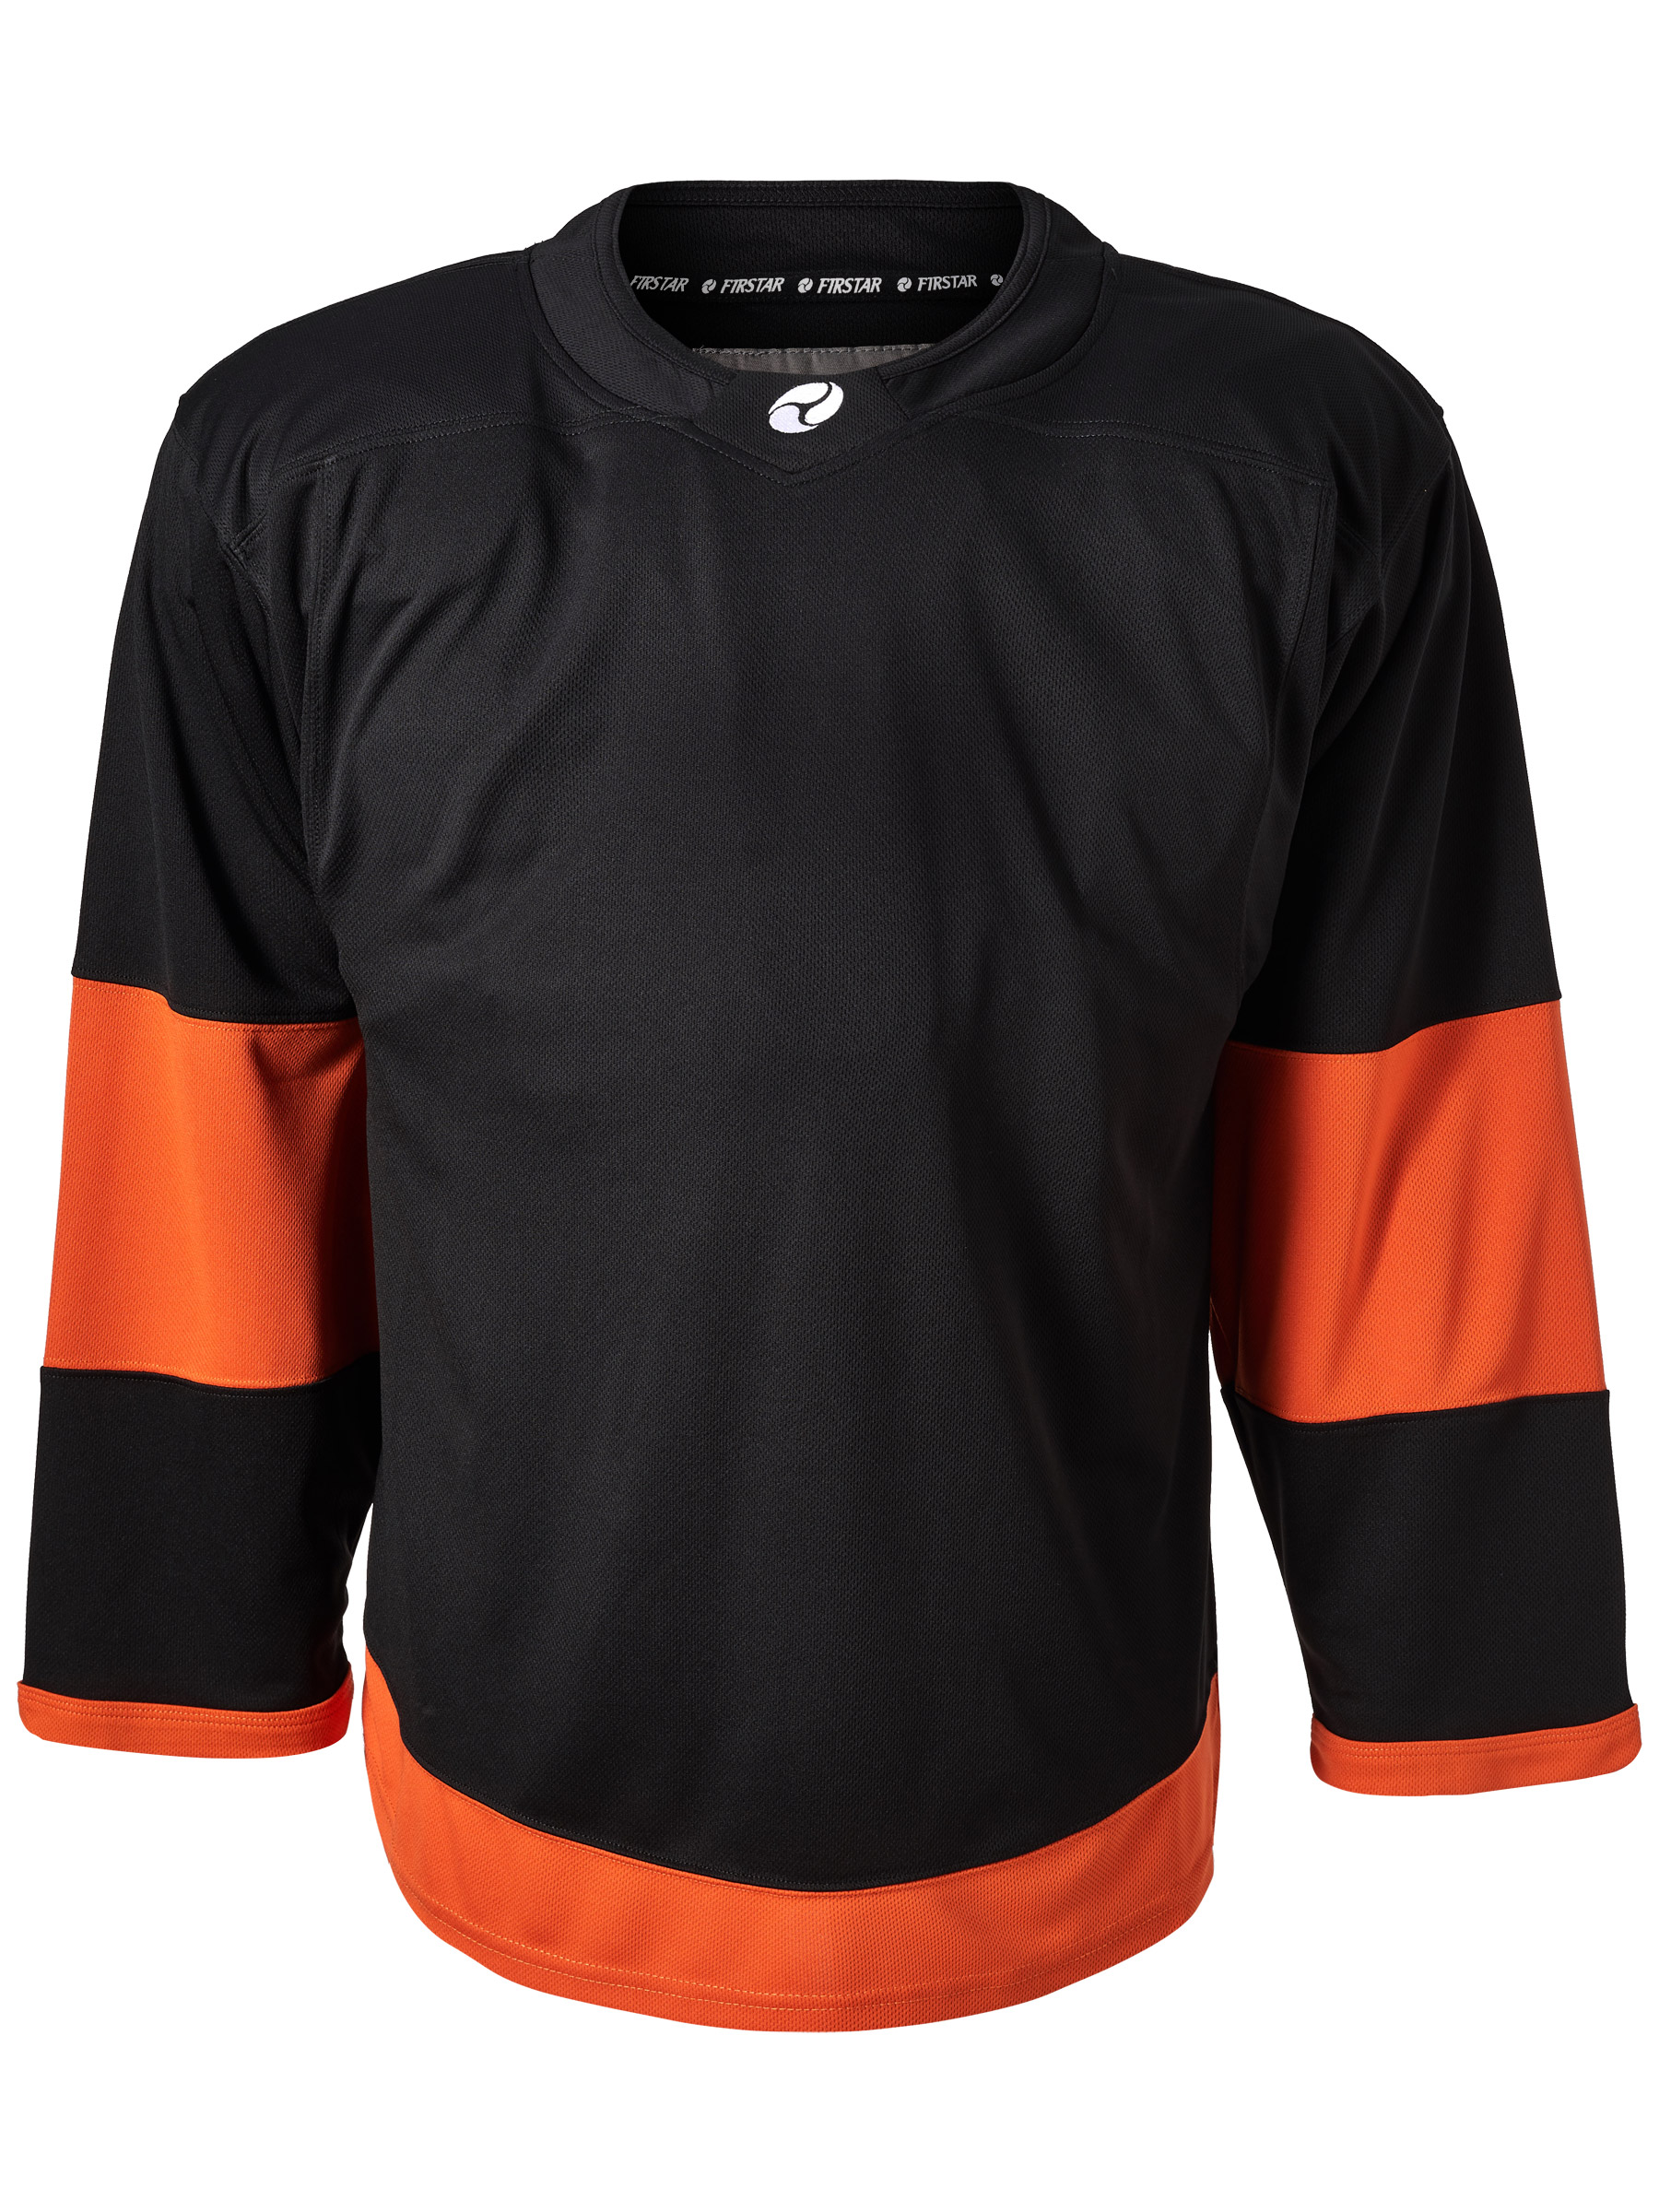 Firstar-Gamewear-Jersey-Philadelphia-Black.jpeg